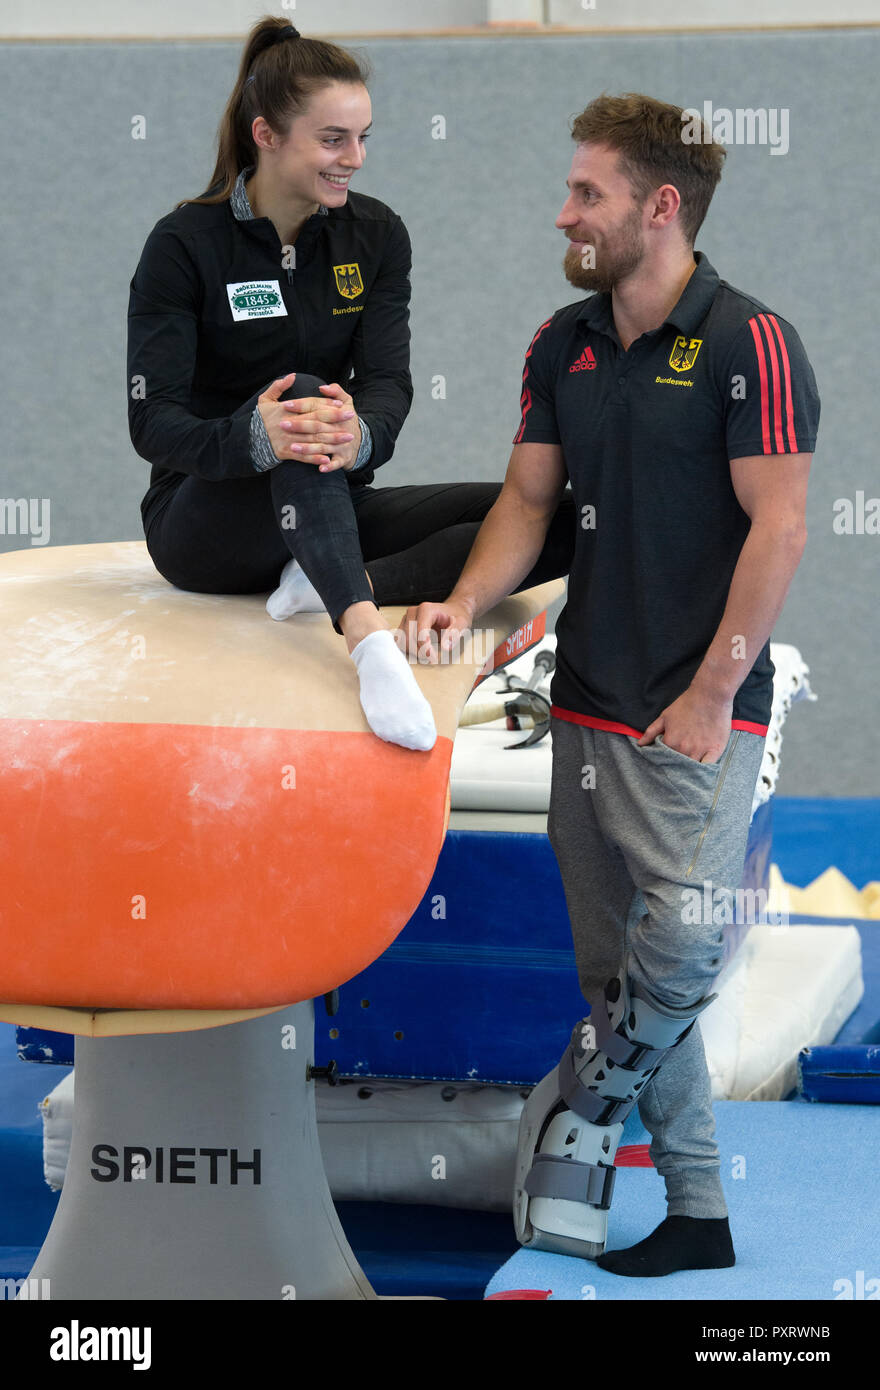 17 October 2018, Saxony, Chemnitz: Pauline Schäfer, World Champion at the balance beam and bar specialist Andreas Bretschneider talk in the gym in the Sportforum Chemnitz. The top gymnasts from Chemnitz miss the World Championship in Doha due to injury. Schäfer is still suffering from an ankle injury. Bretschneider tore his Achilles tendon in his left foot at the German Championships in Leipzig. (to dpa-message: 'Sad pair of gymnasts: Shepherds and Bretschneider experience World Championships before TV' from 24.10.2018) Photo: Hendrik Schmidt/dpa-Zentralbild/ZB - Stock Image